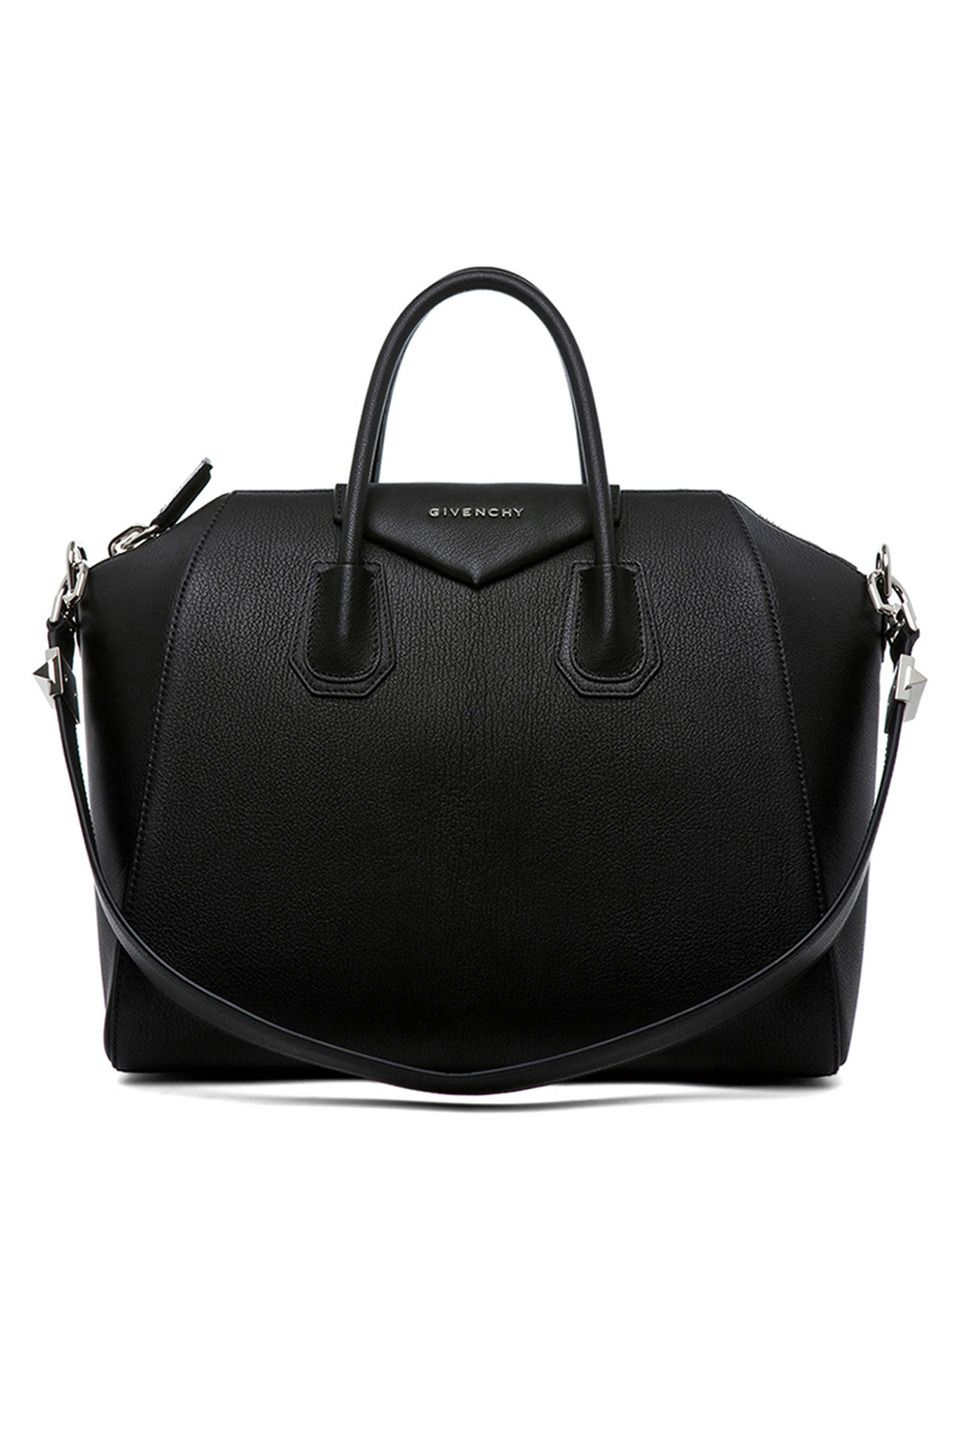 Givenchy - Medium Antigona in Matte Black  1199.99  b23622ef5a47c